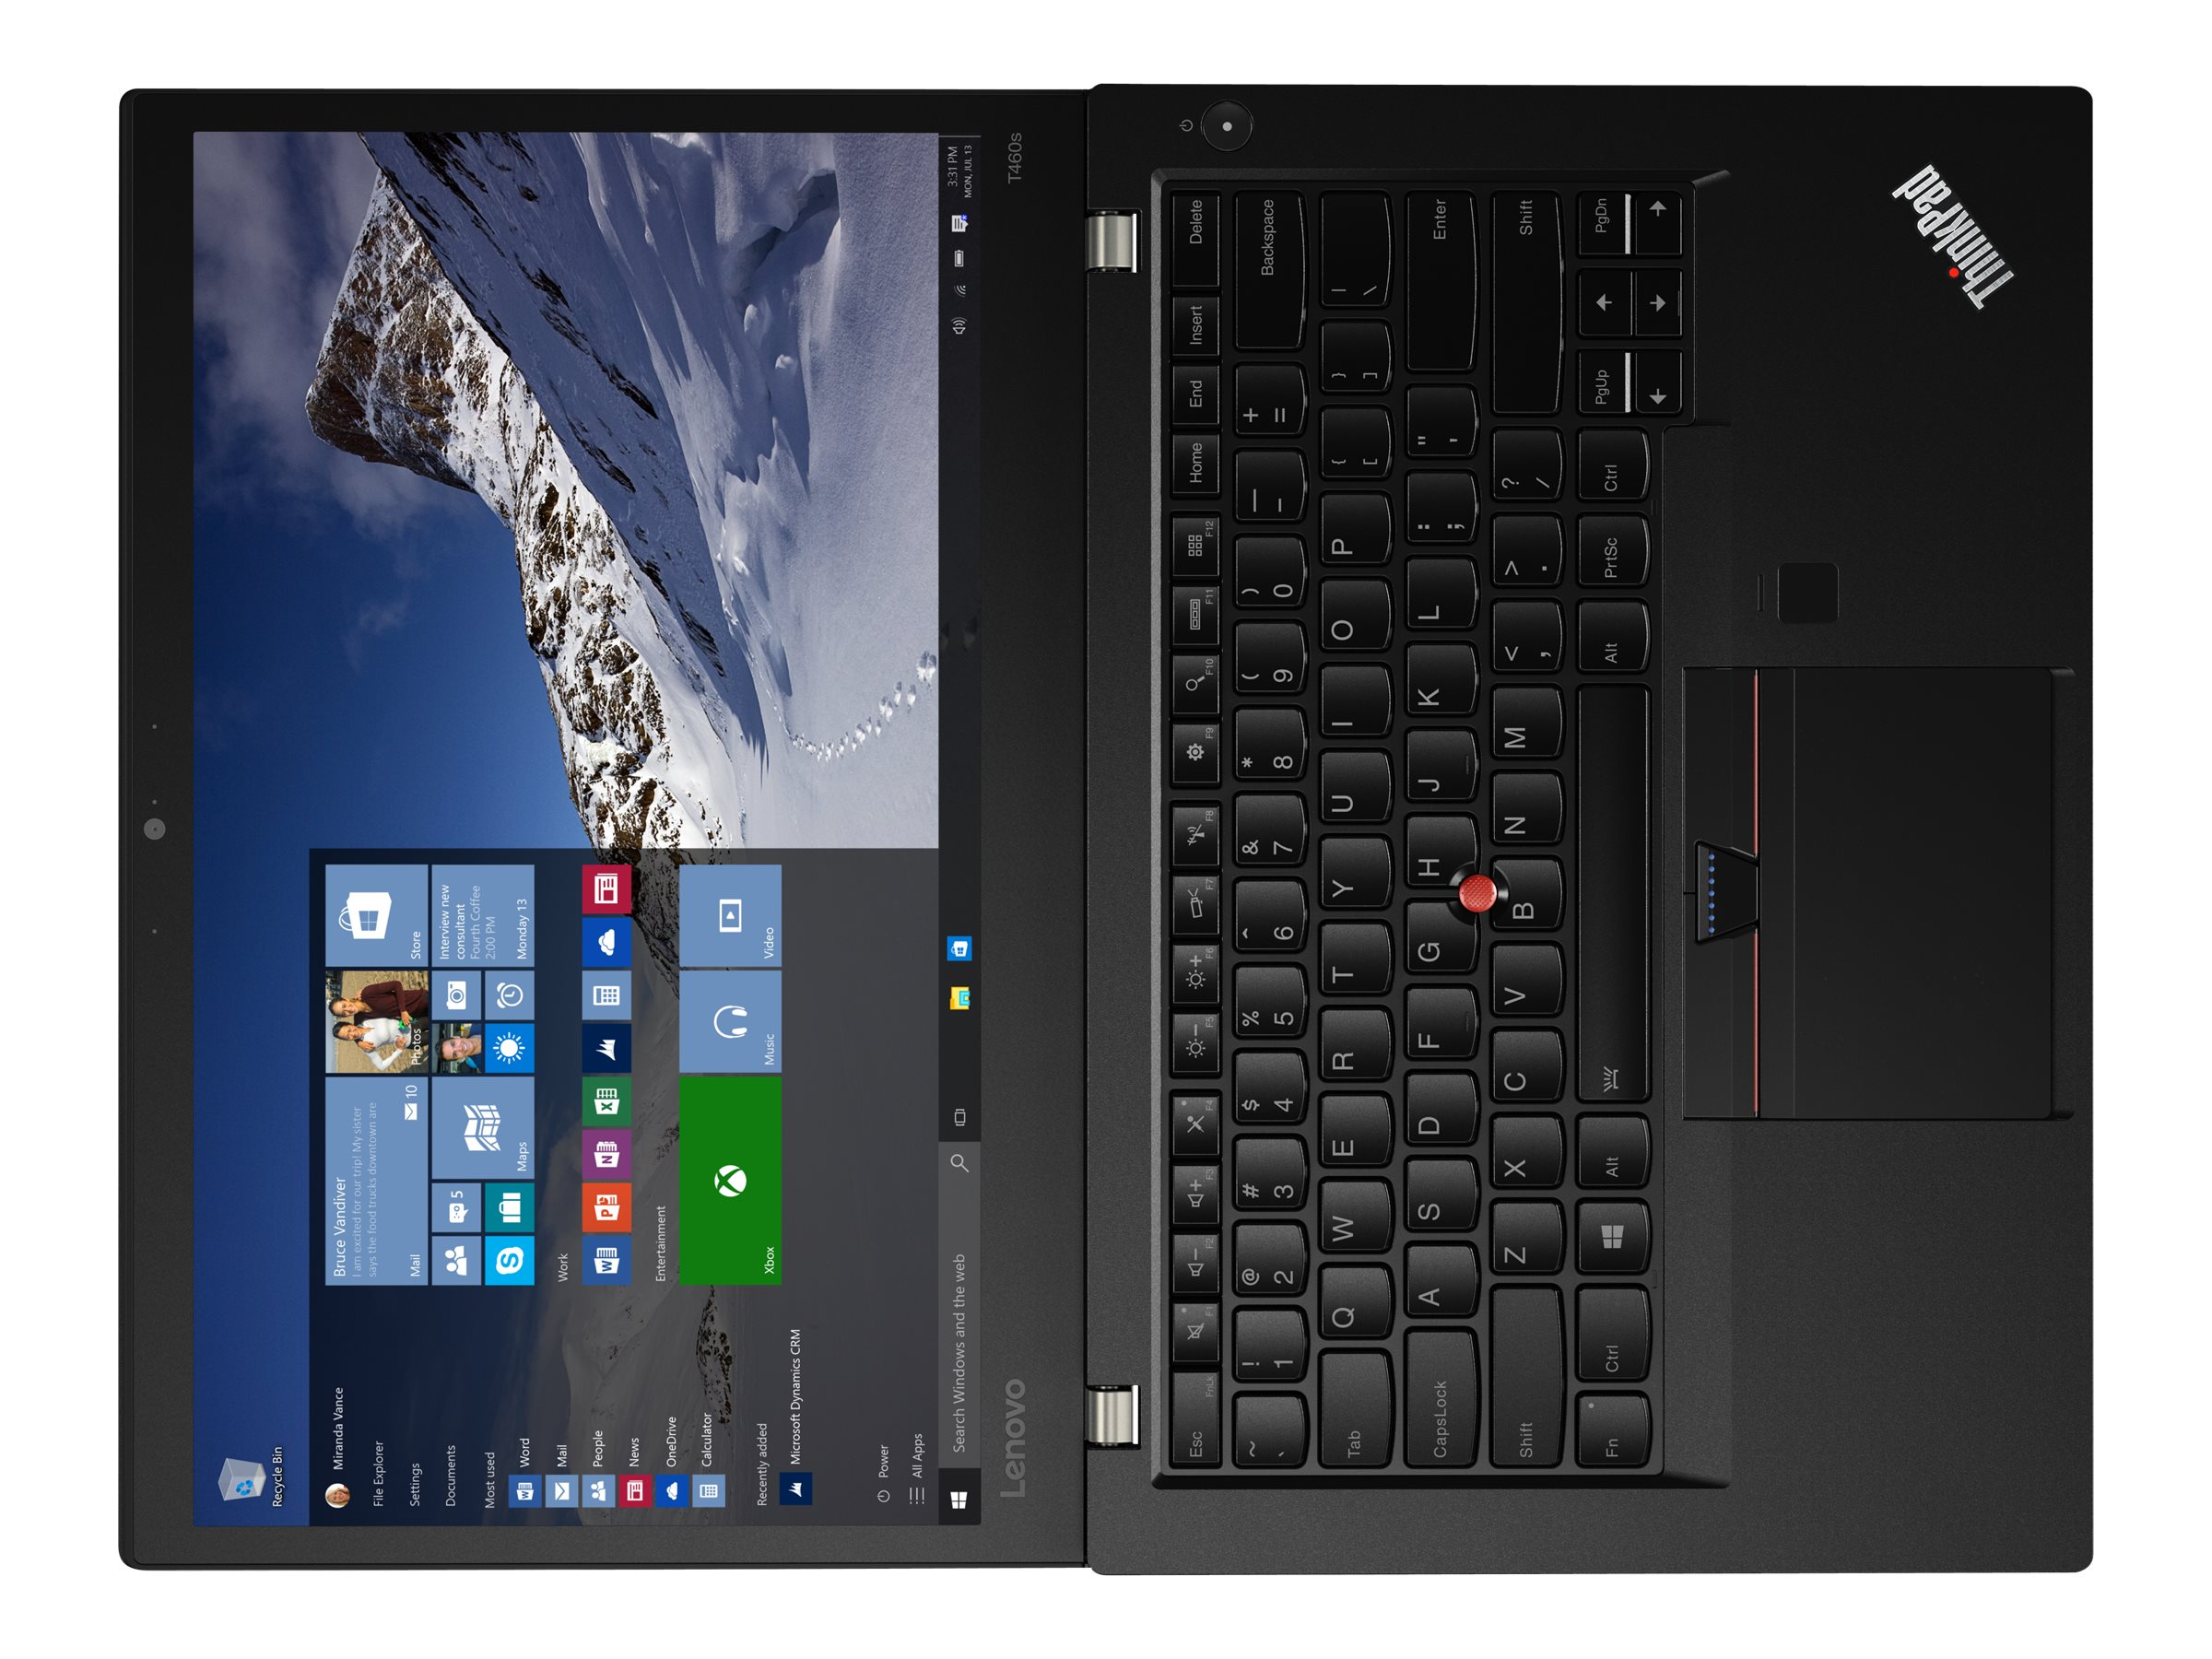 Lenovo TopSeller ThinkPad T460s 2.6GHz Core i7 14in display, 20F9003CUS